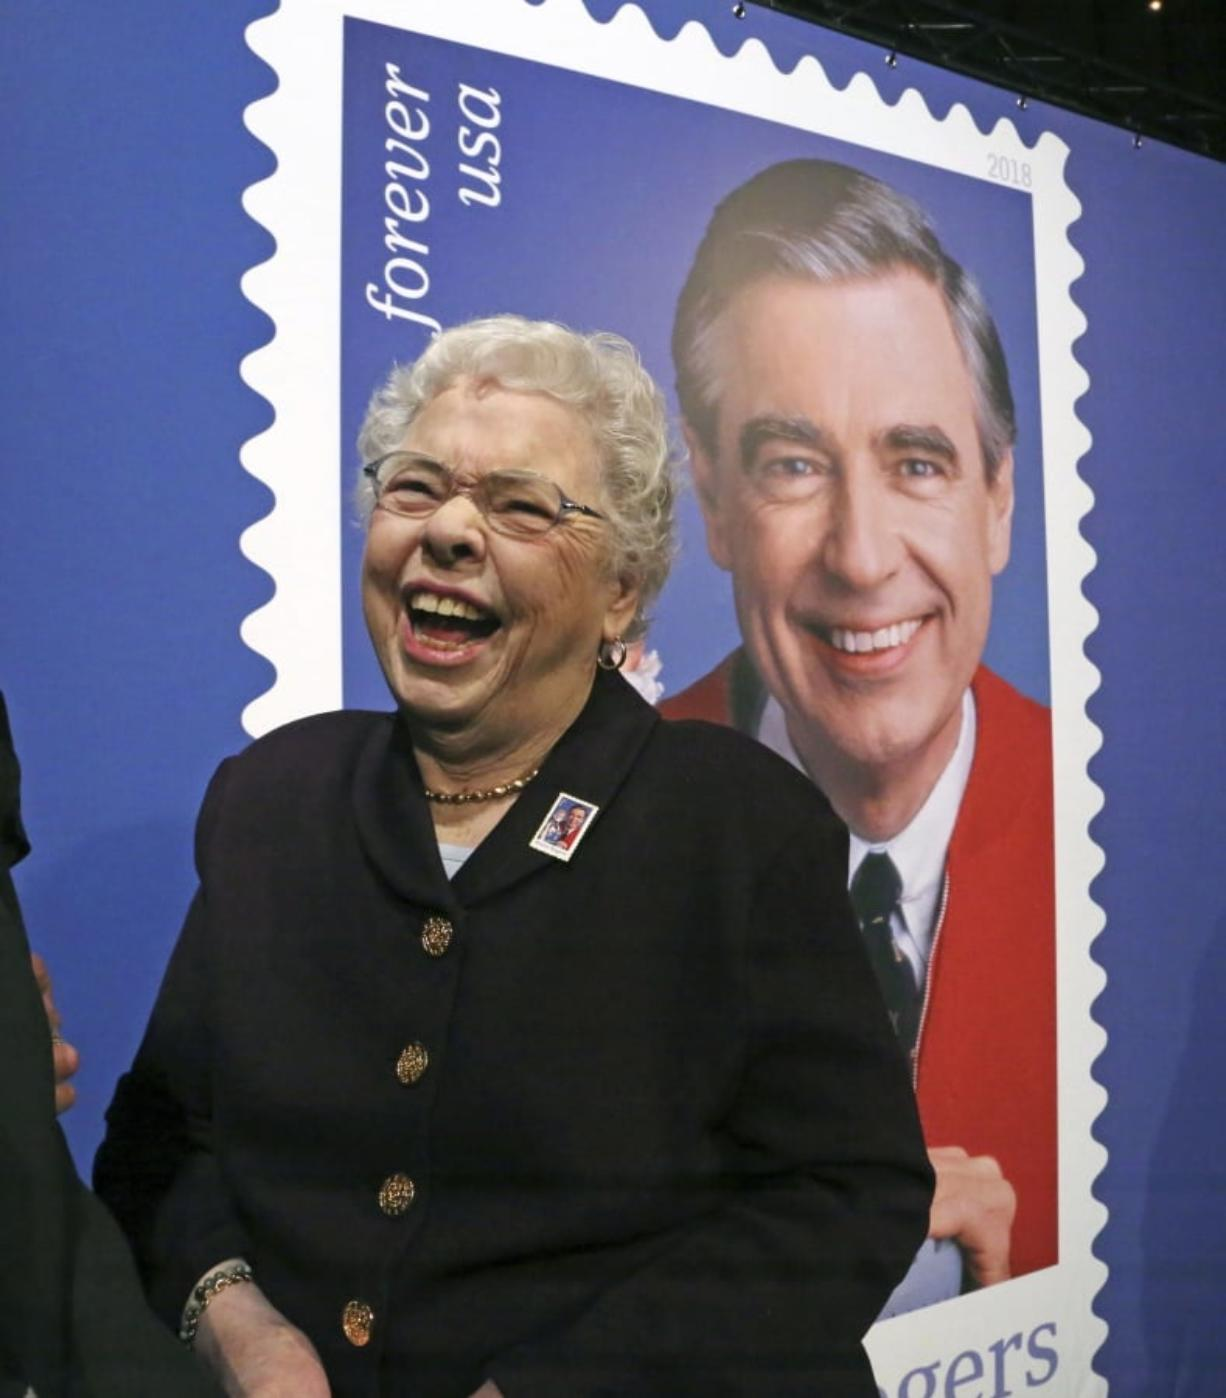 Mr Rogers Gets A Stamp Of Approval Columbian Com